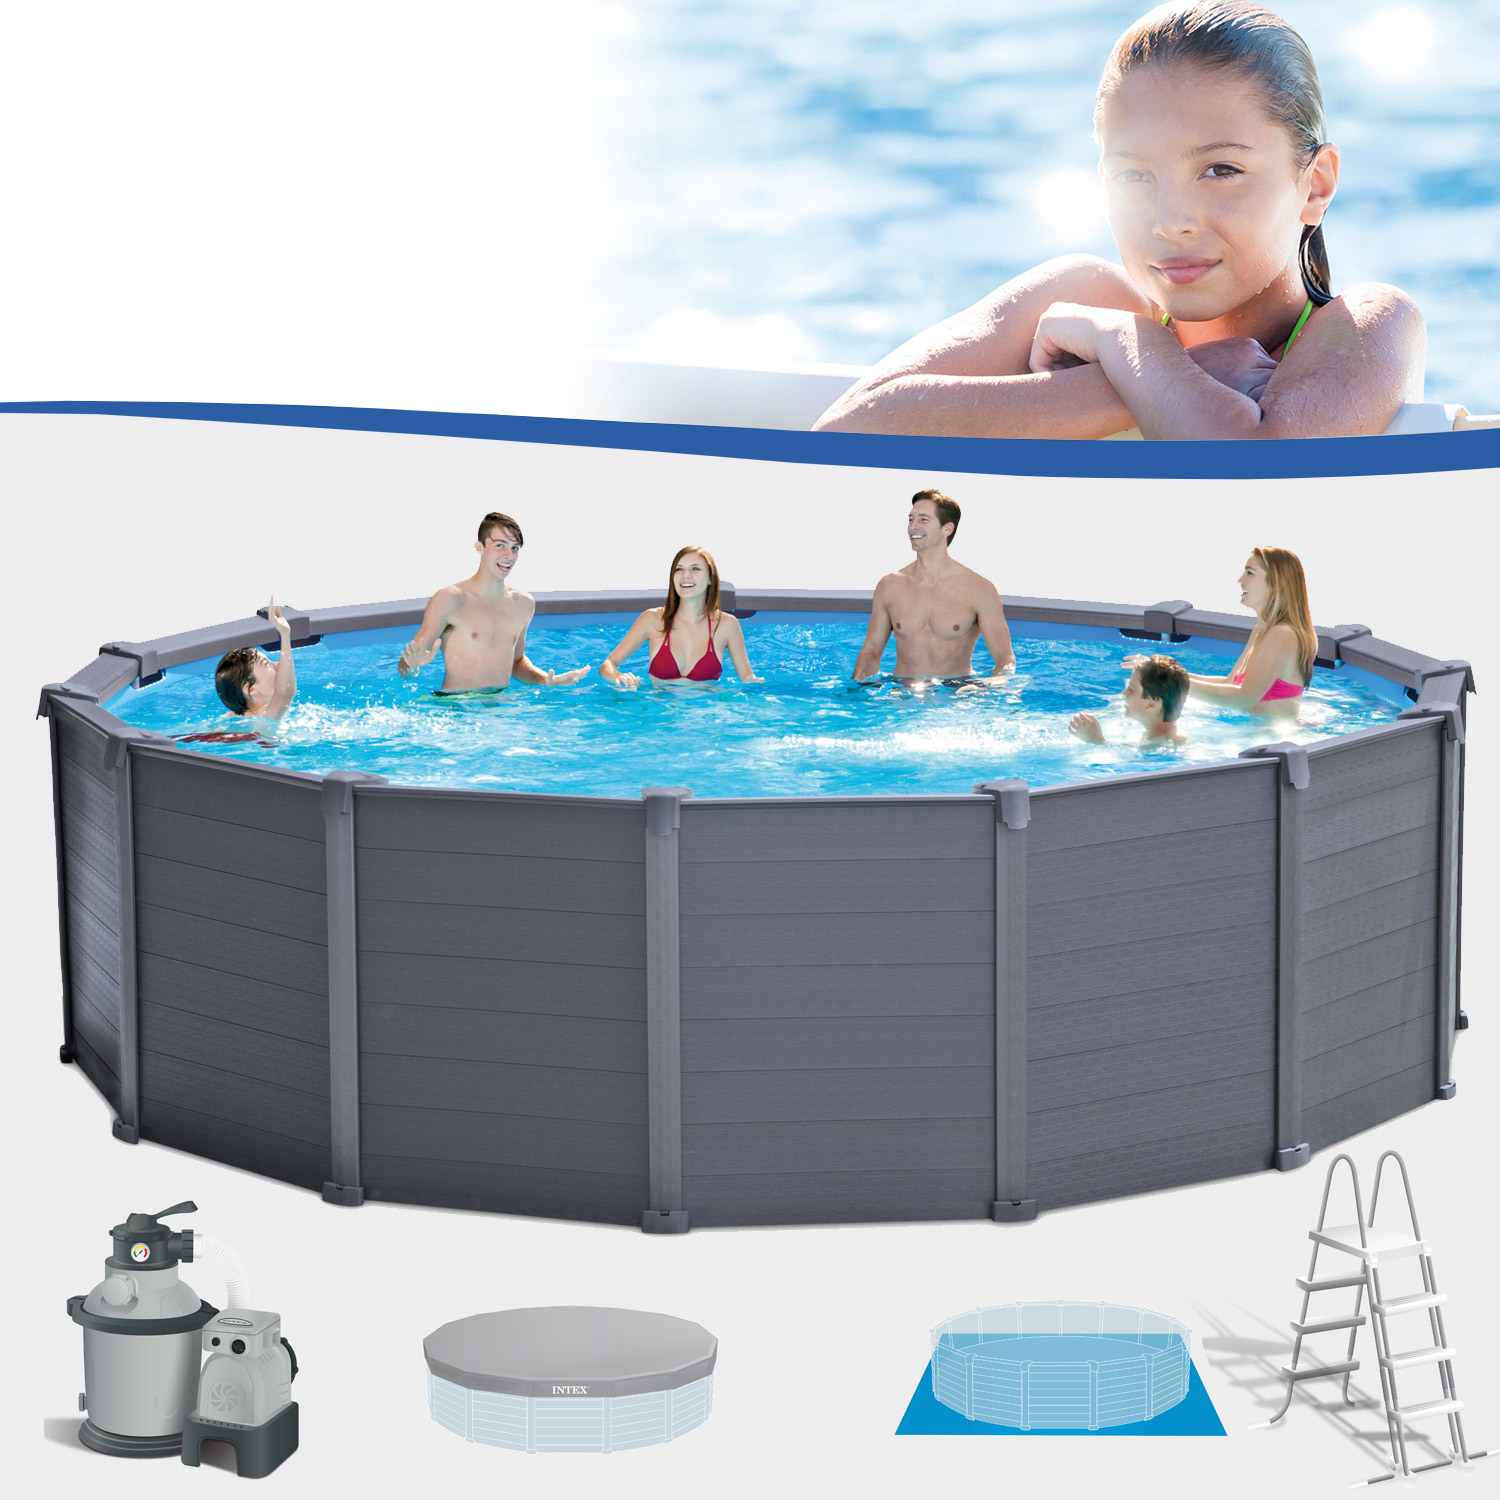 Intex 478 x 124 cm frame pool komplett set graphit mit for Pool 457x122 mit sandfilteranlage